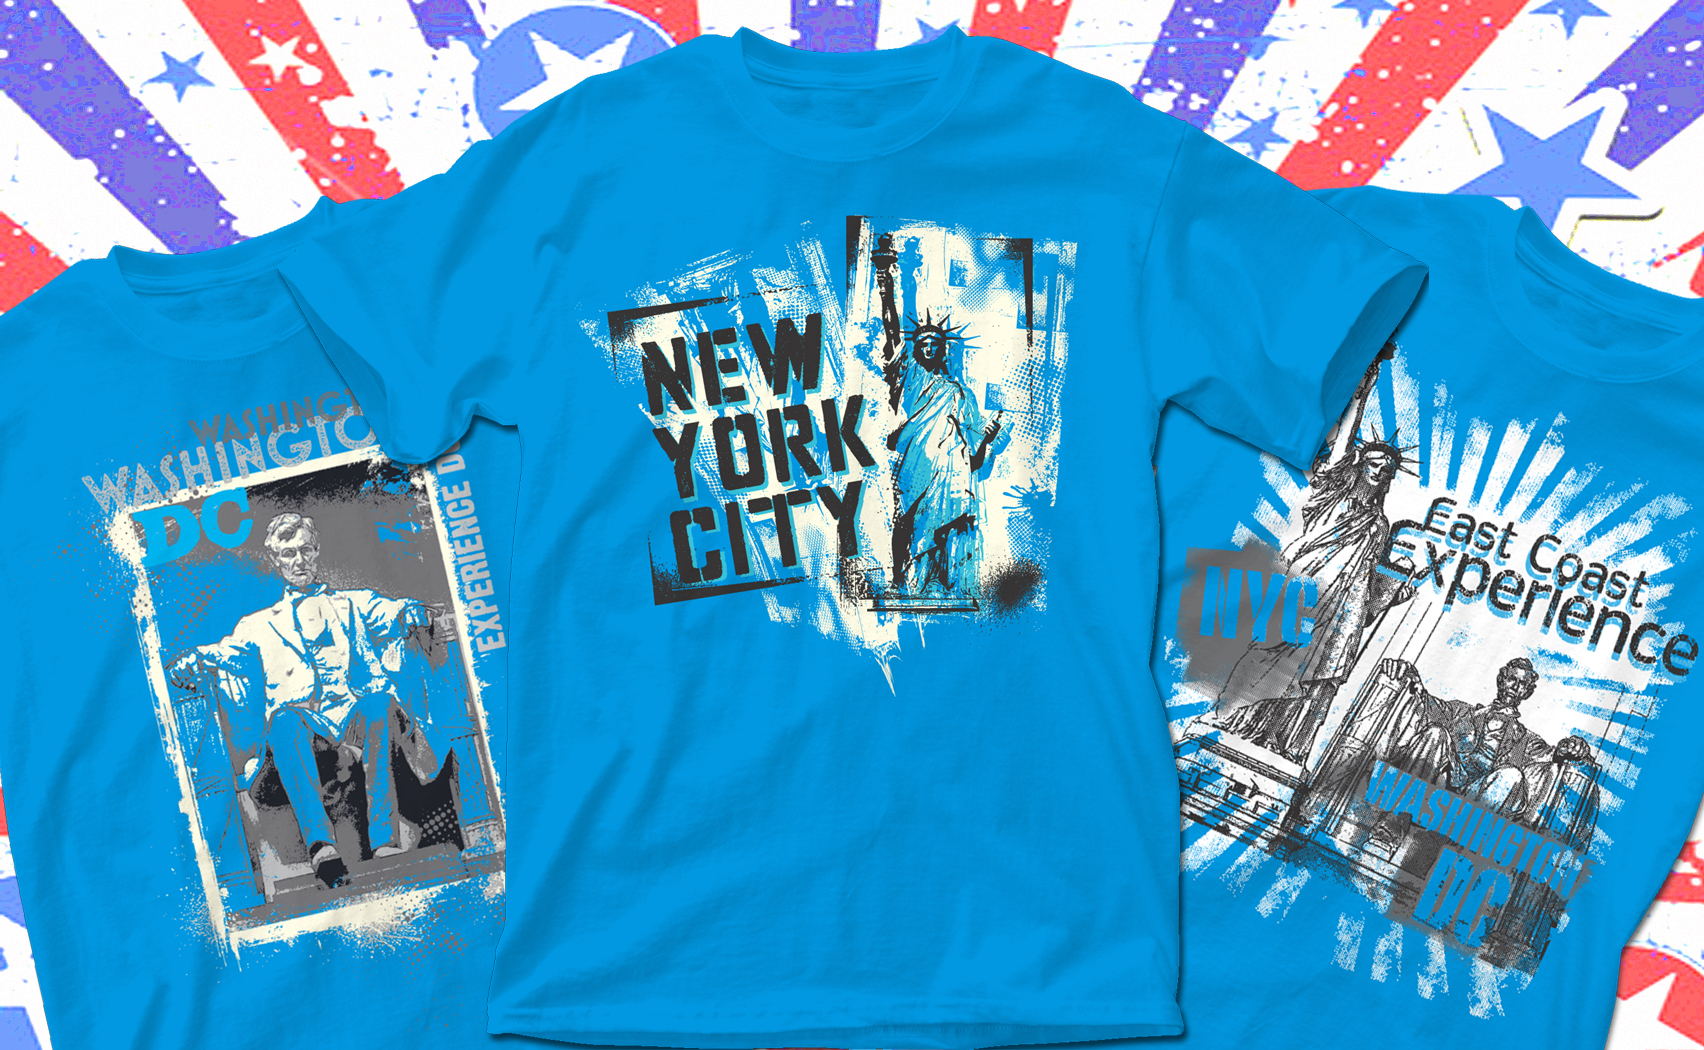 Iza design blog washington dc nyc student travel t shirt for T shirts printing washington dc